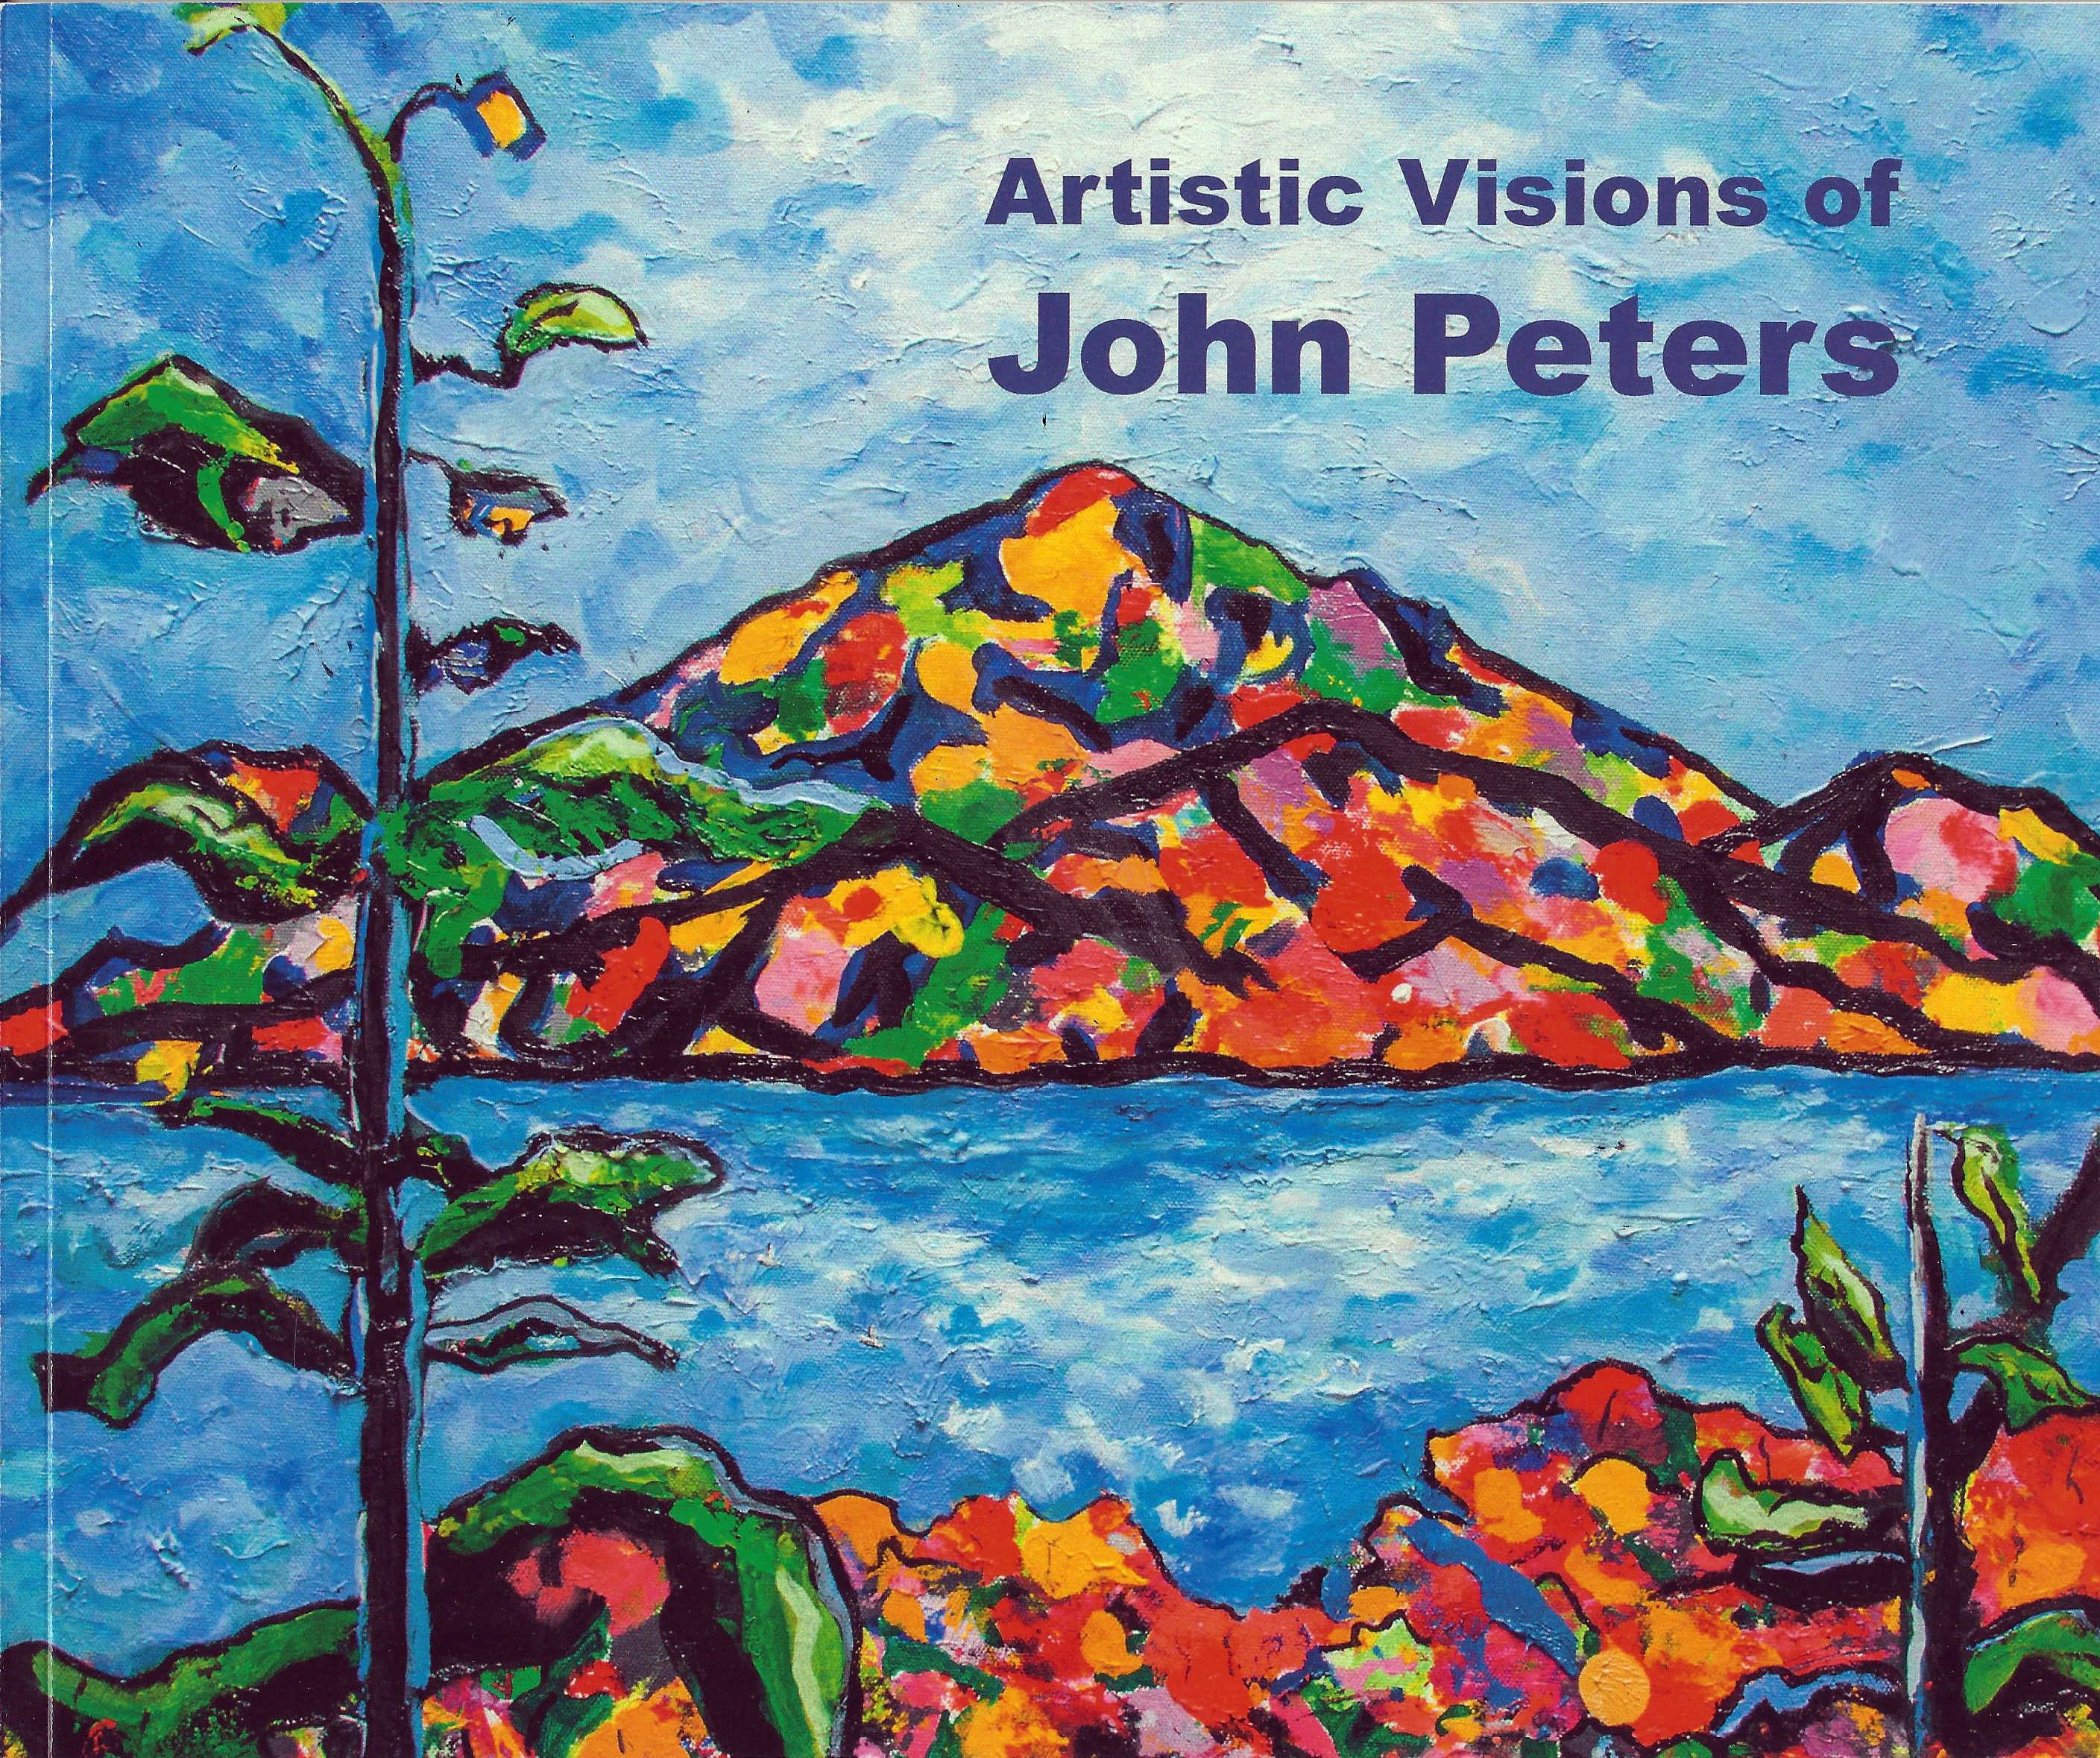 Artistic Visions of John Peters